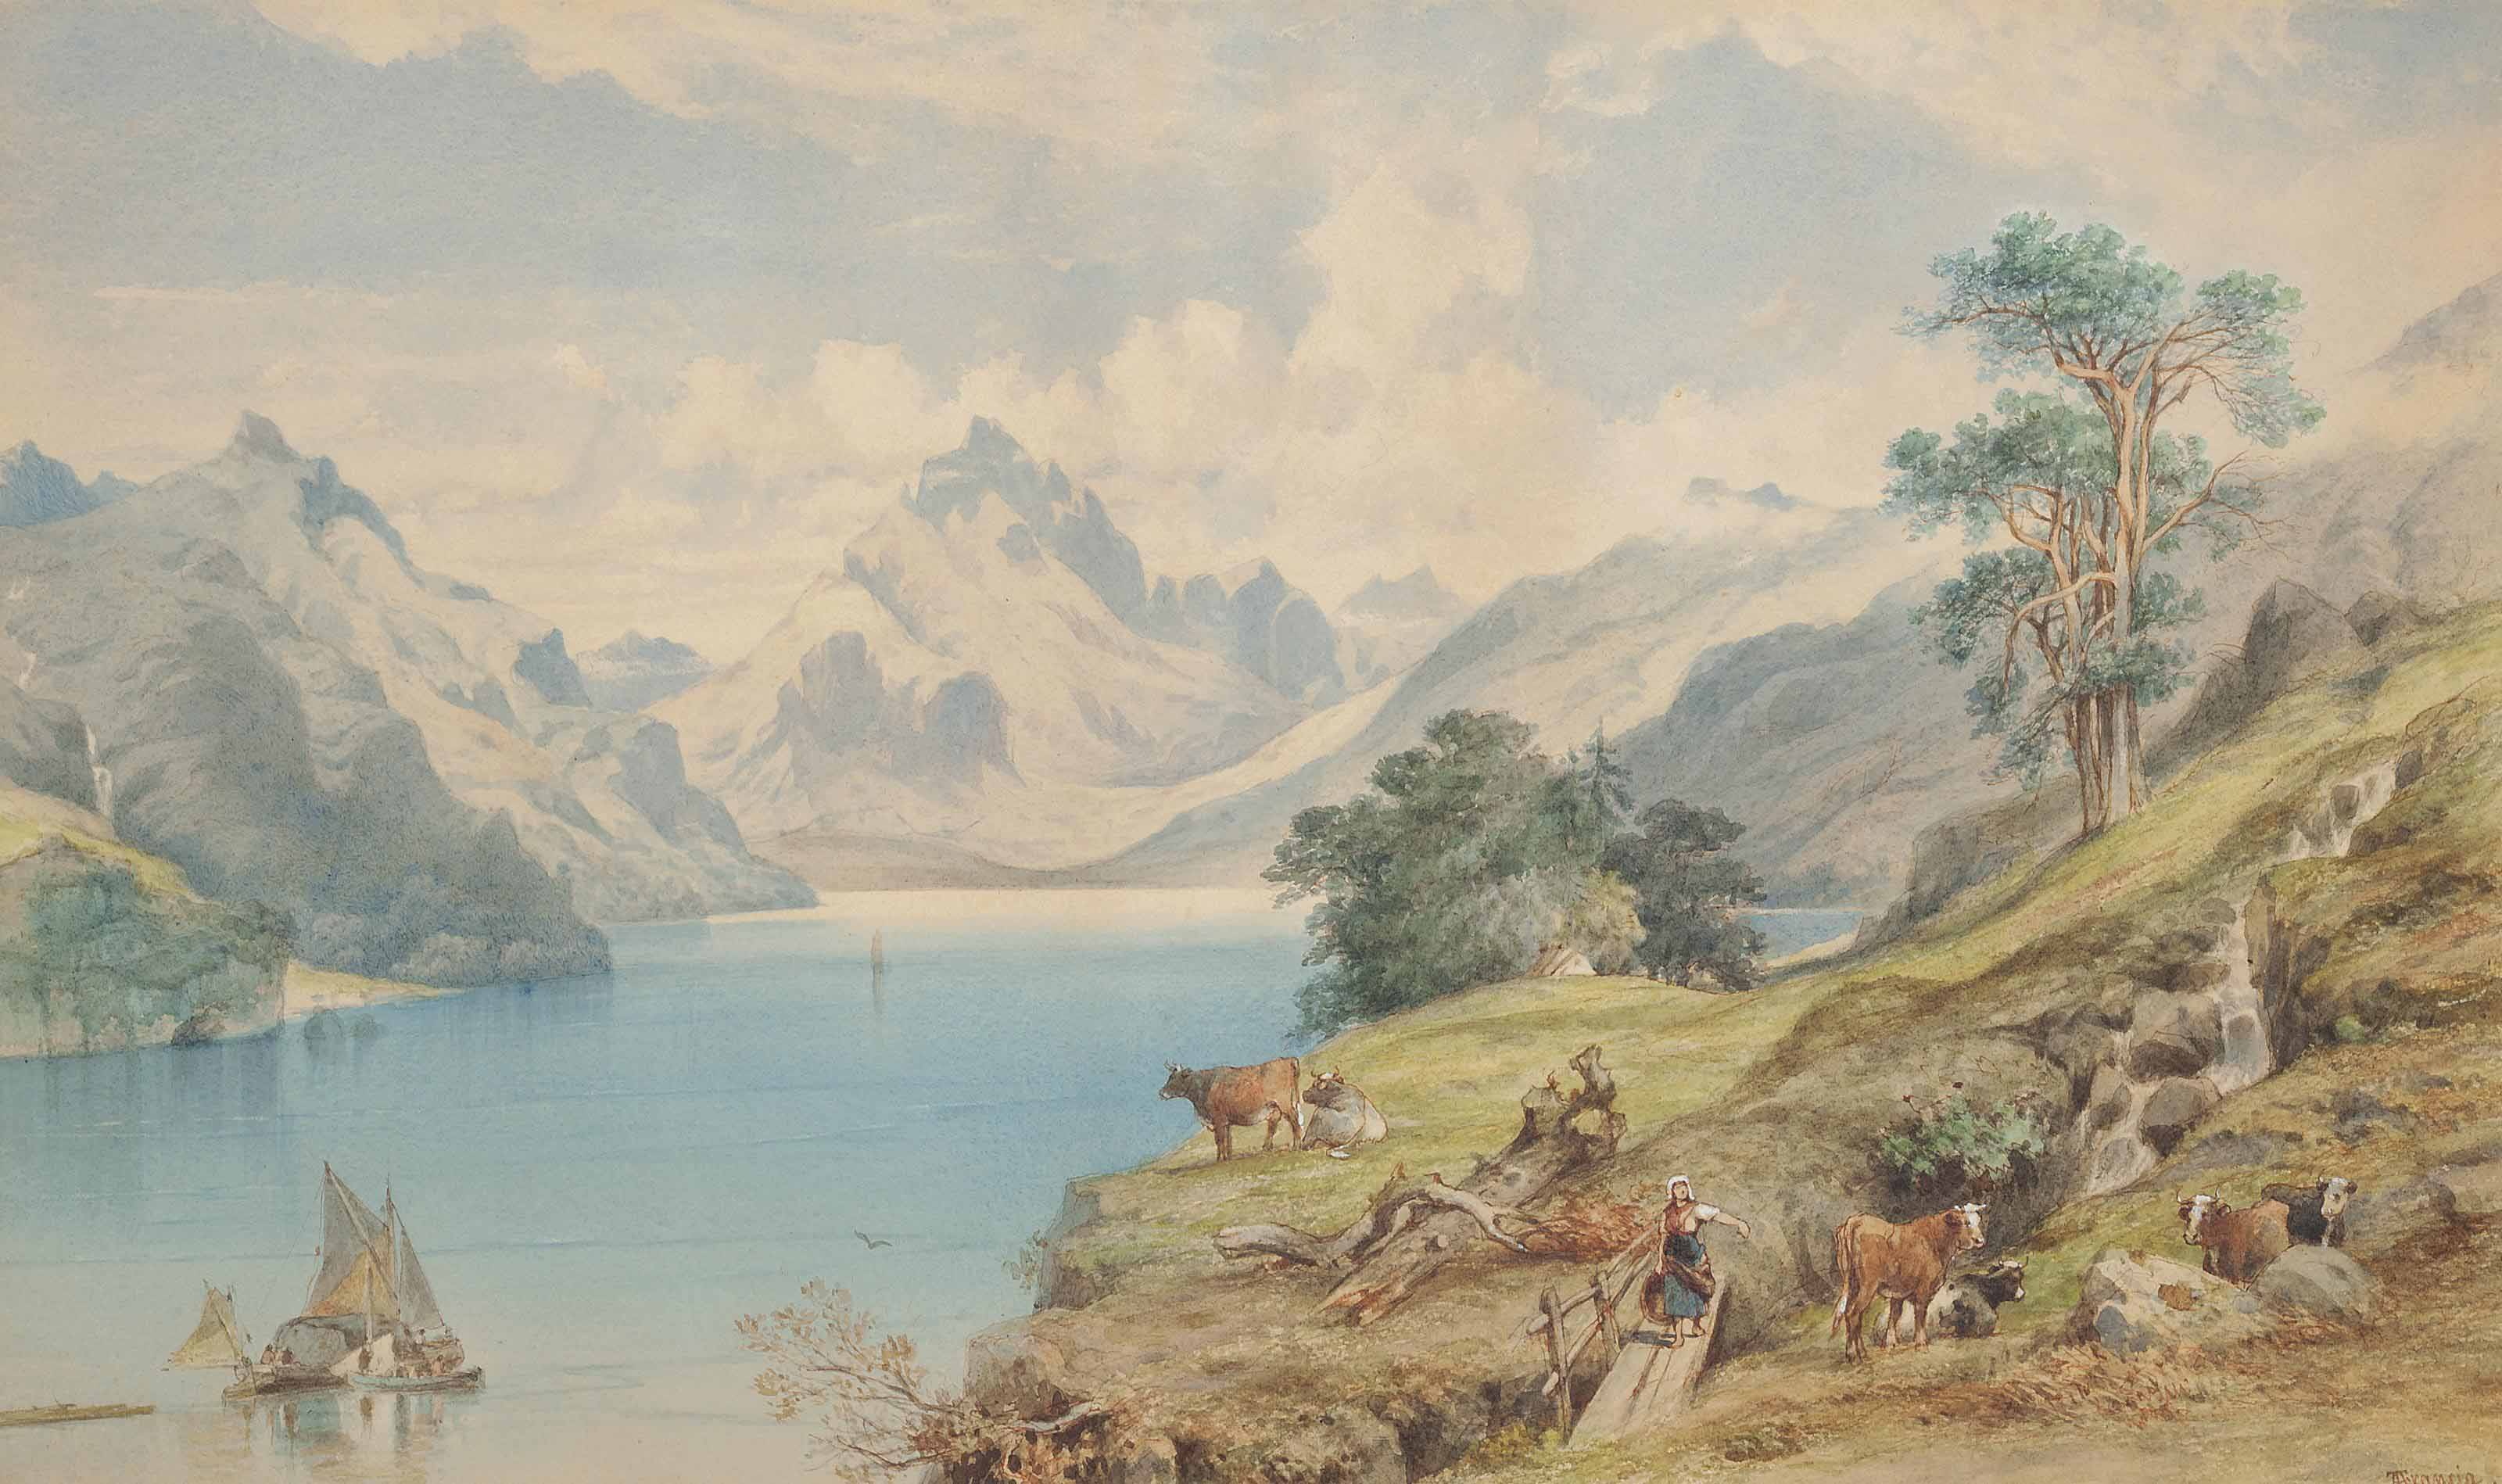 View of Loch Ranza on the Isle of Arran (illustrated); and Figures by a fallen tree trunk above a coastal village